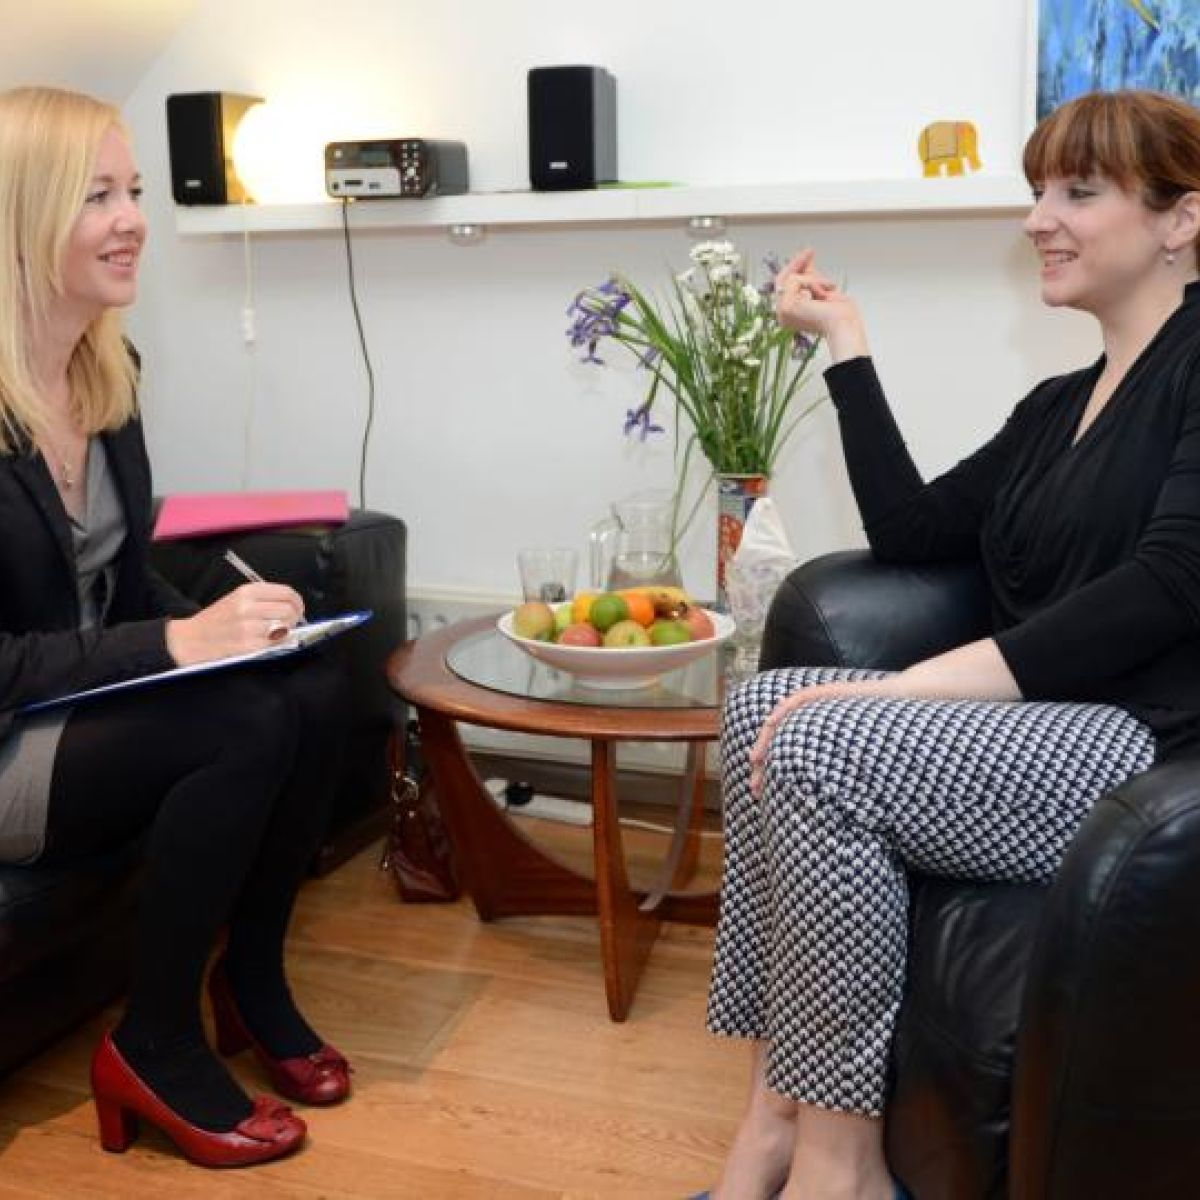 Hypnotherapy for weight loss? Turns out, it's not all in the